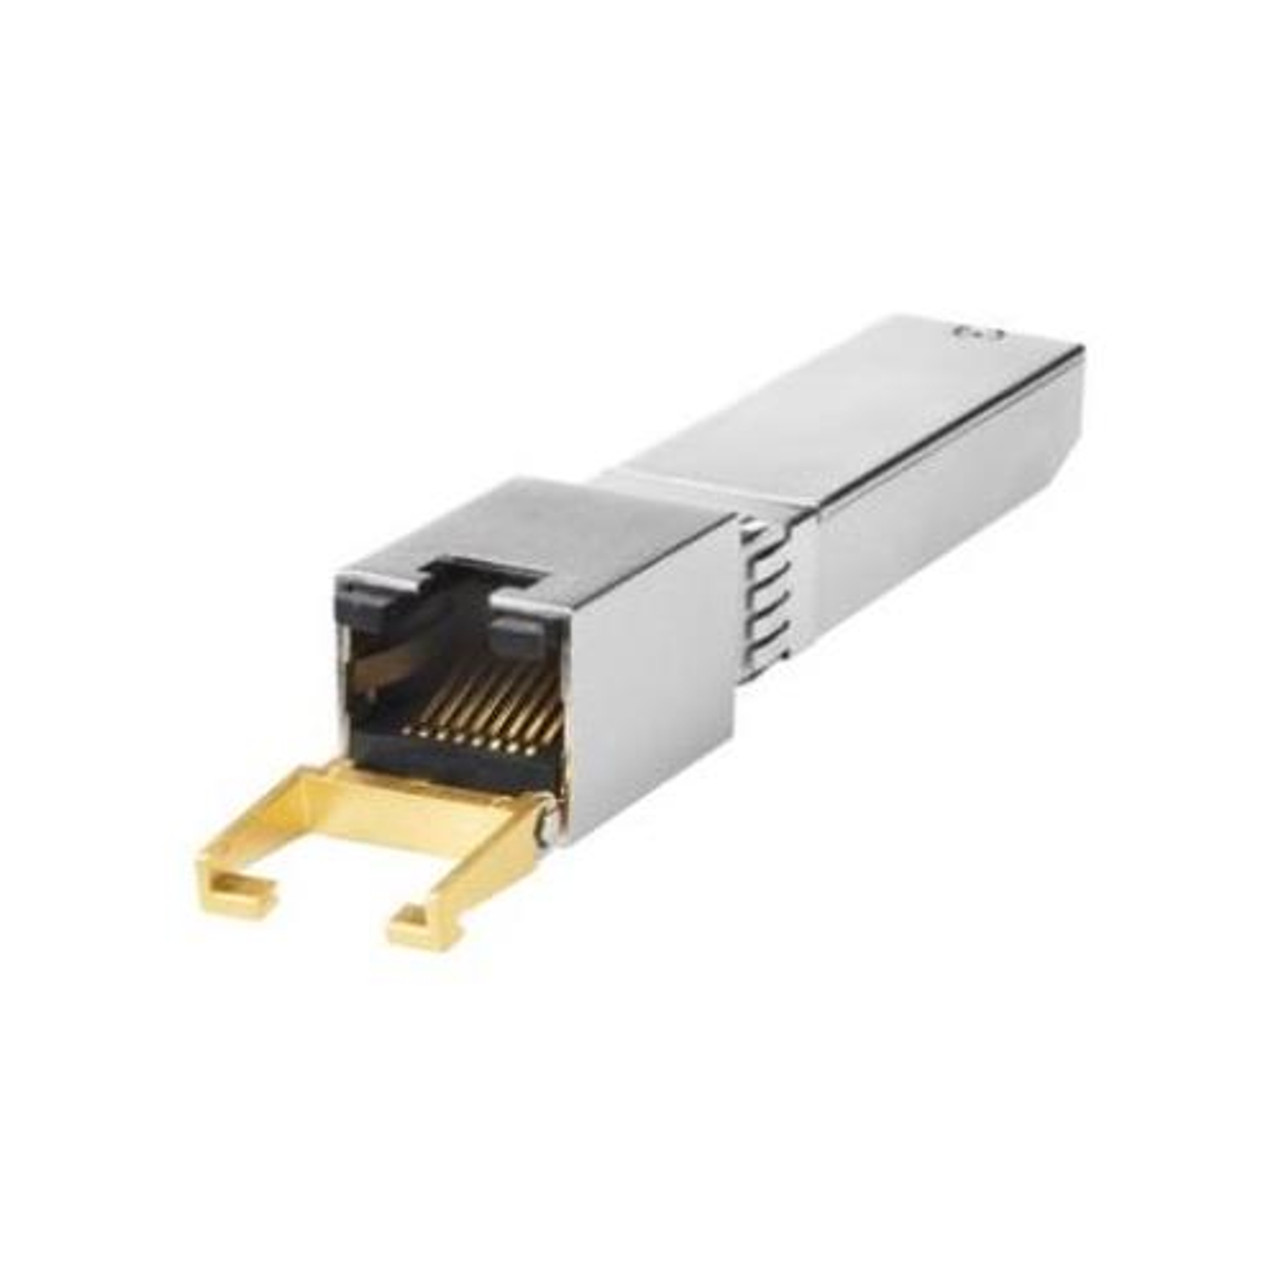 HPE 10GBase-T SFP to RJ-45 Transceiver Adapter 813874-B21 826762-001